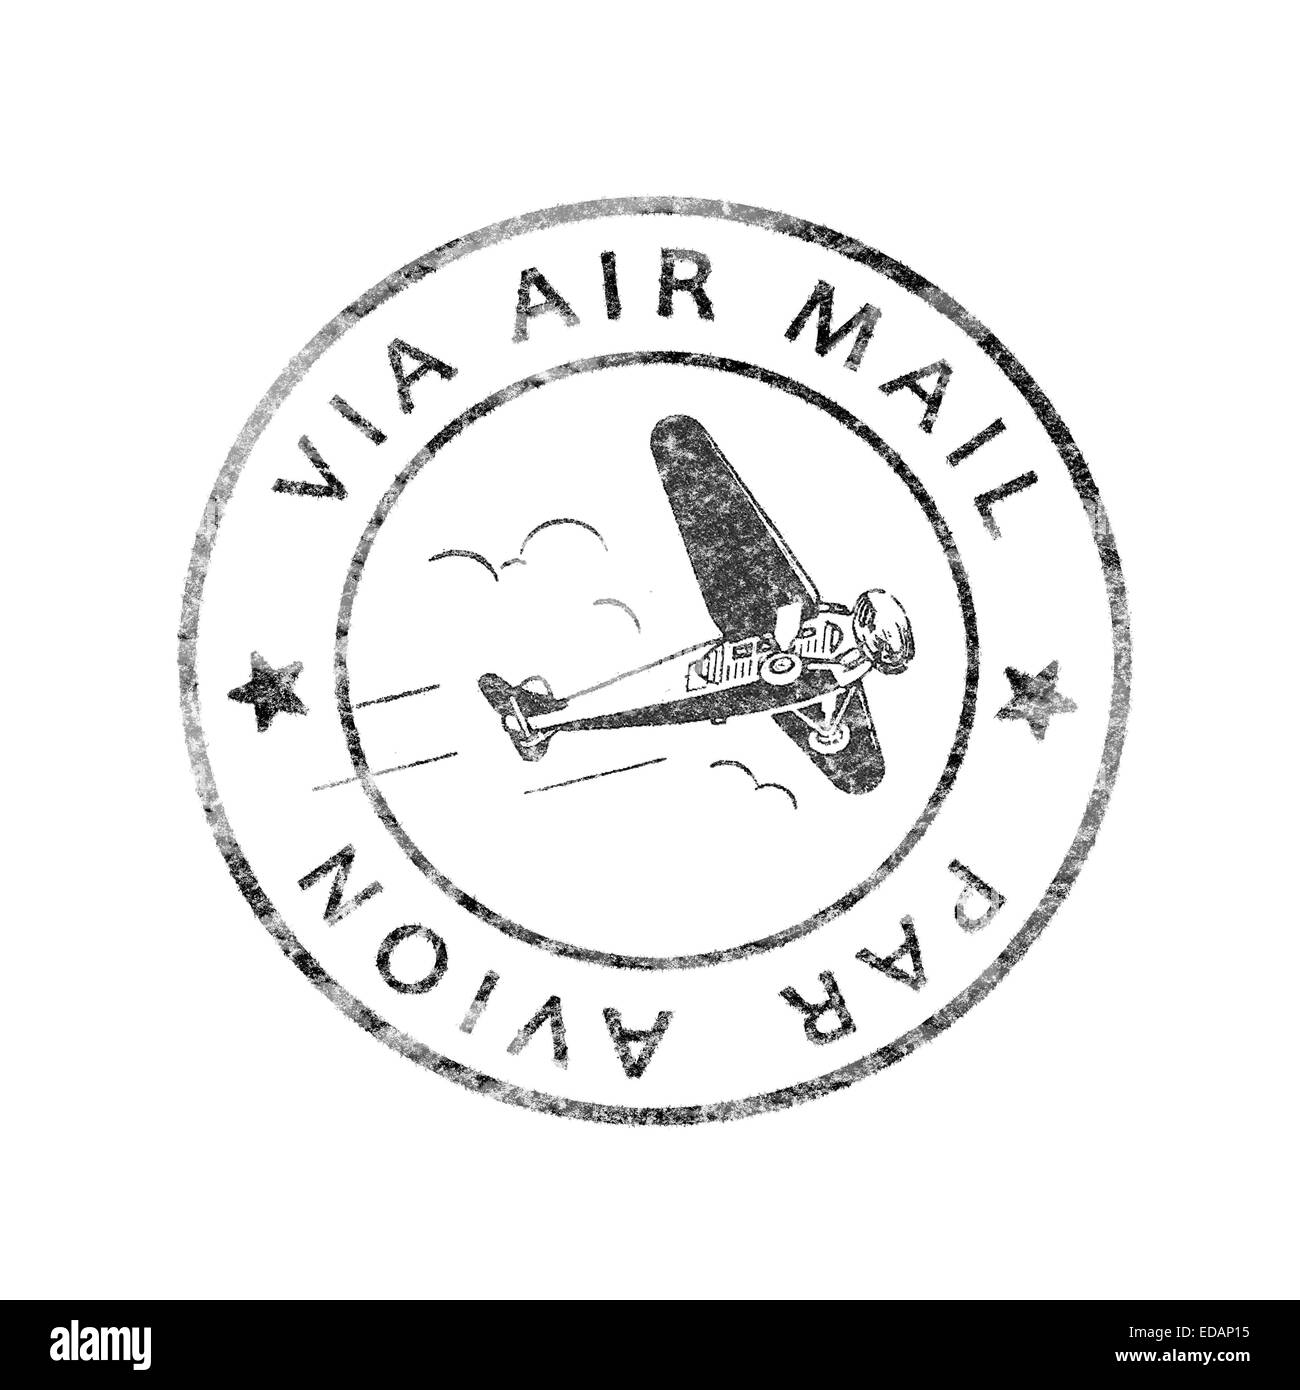 Historic Postmark Air mail / Par Avion, isolated - Stock Image